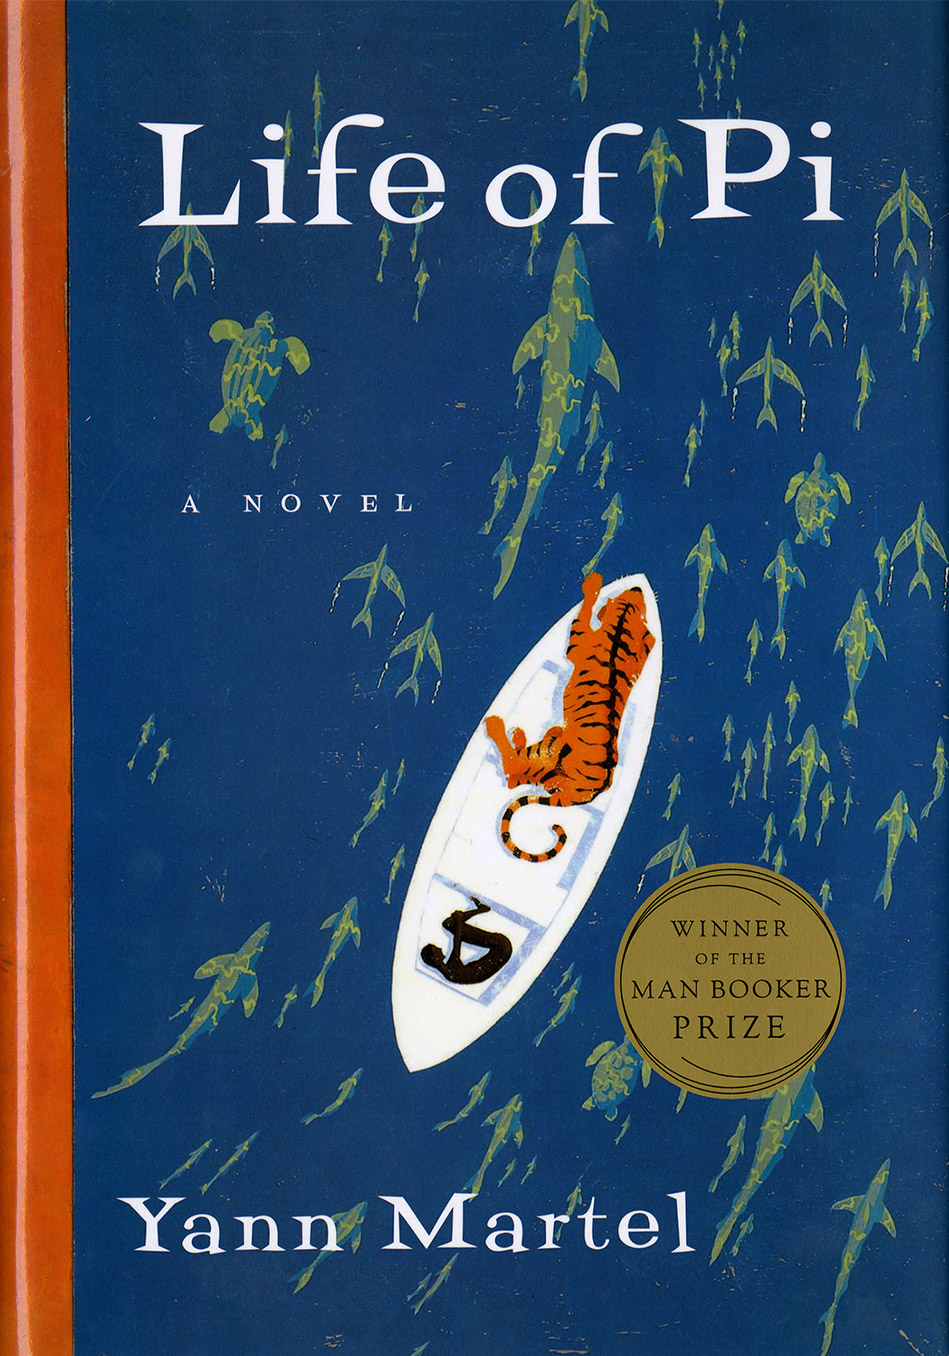 Tuck Everlasting Essay Books That Defined A Generation Life Of Pi The Most Addictive Books Of The  Last  Essay On Following Directions also Marketing Essay Writing Life Of Pi Essay Topics Social Essay Topics Social Essay Topics Papi  Lady Macbeth Ambition Essay